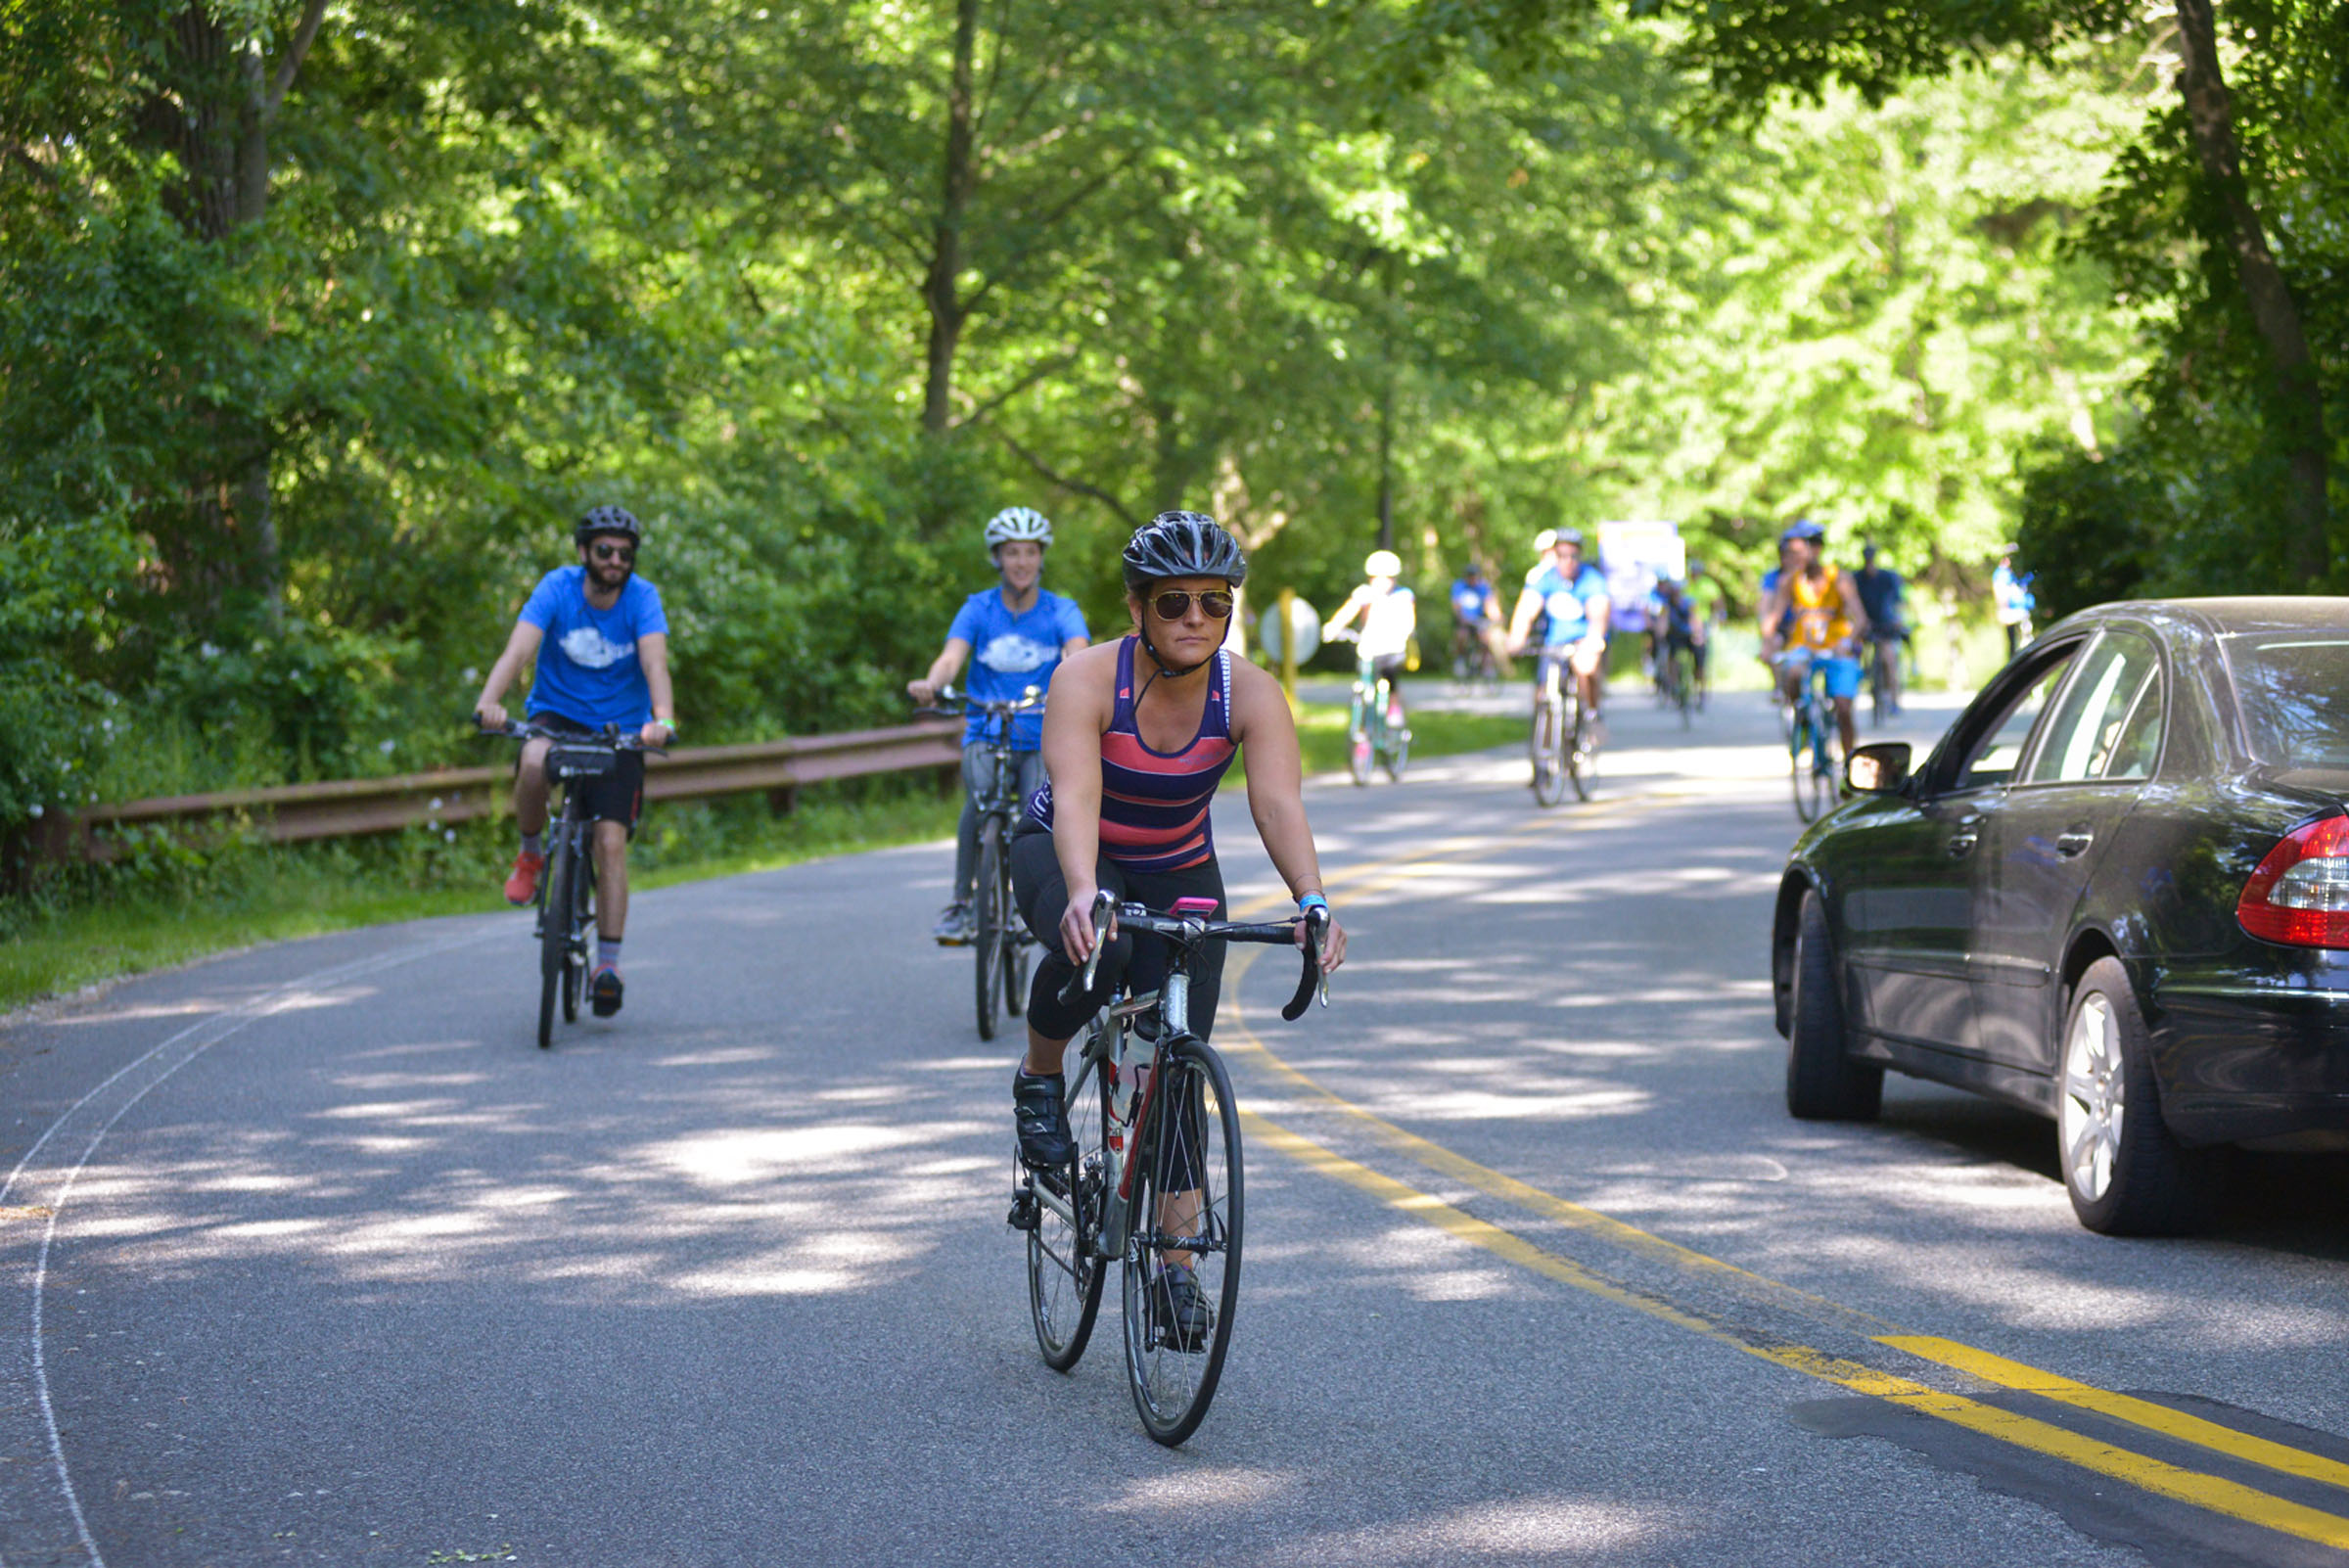 2017-06-04 GTD4A Charity Bike Ride - BCC - Paramus NJ-1901.jpg